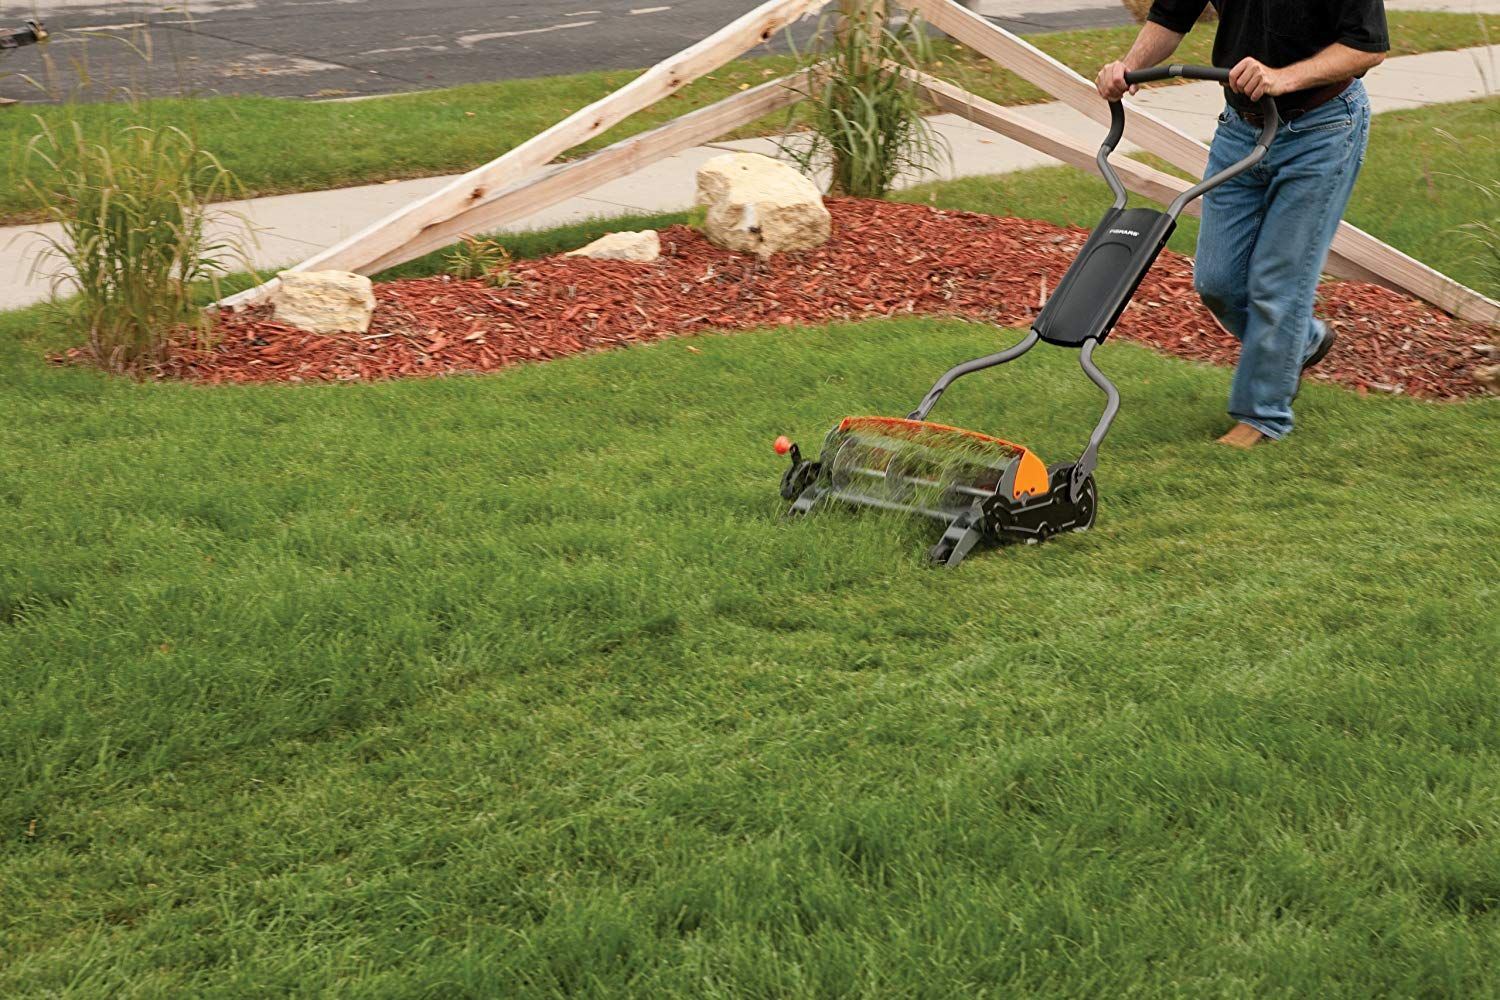 Top Five Best Lawn Mower Consumer Report For The Gardener Lawn Mower Reel Lawn Mower Best Lawn Mower